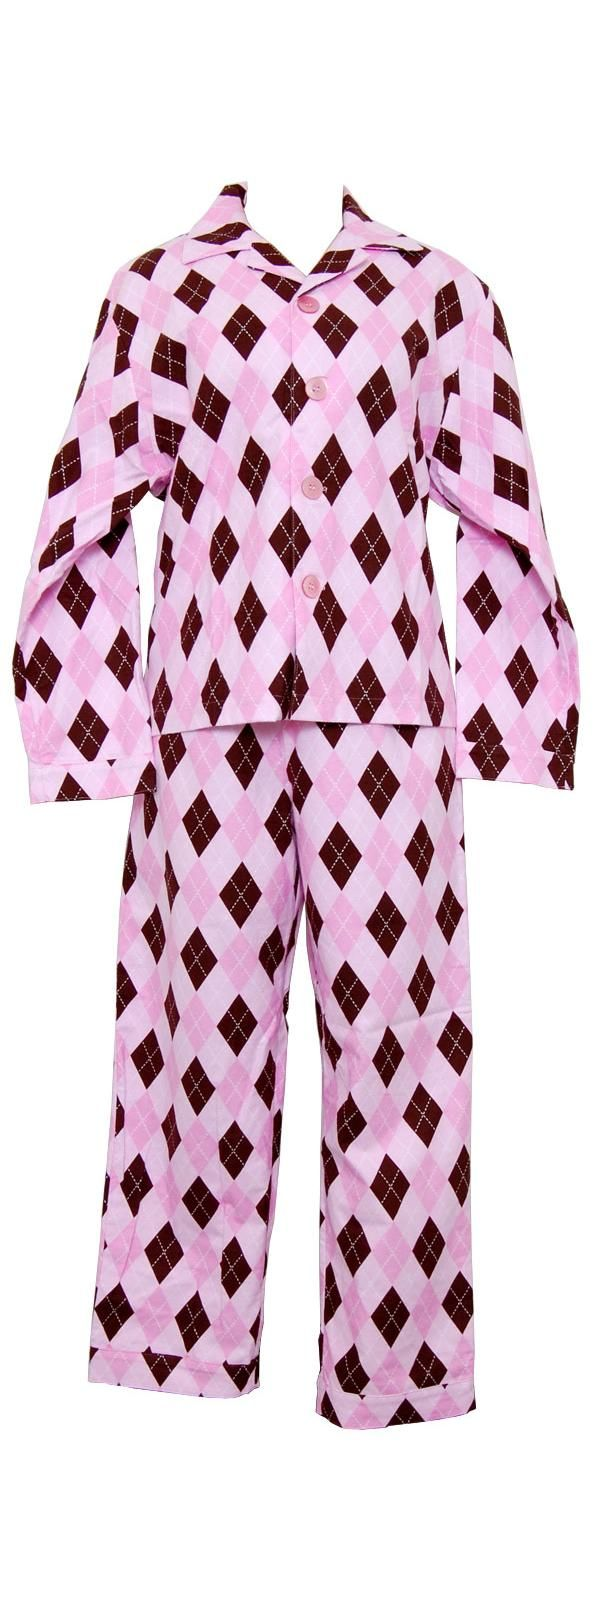 Pajamas - For Women, Men and Kids | Flannel, Foodie and ...